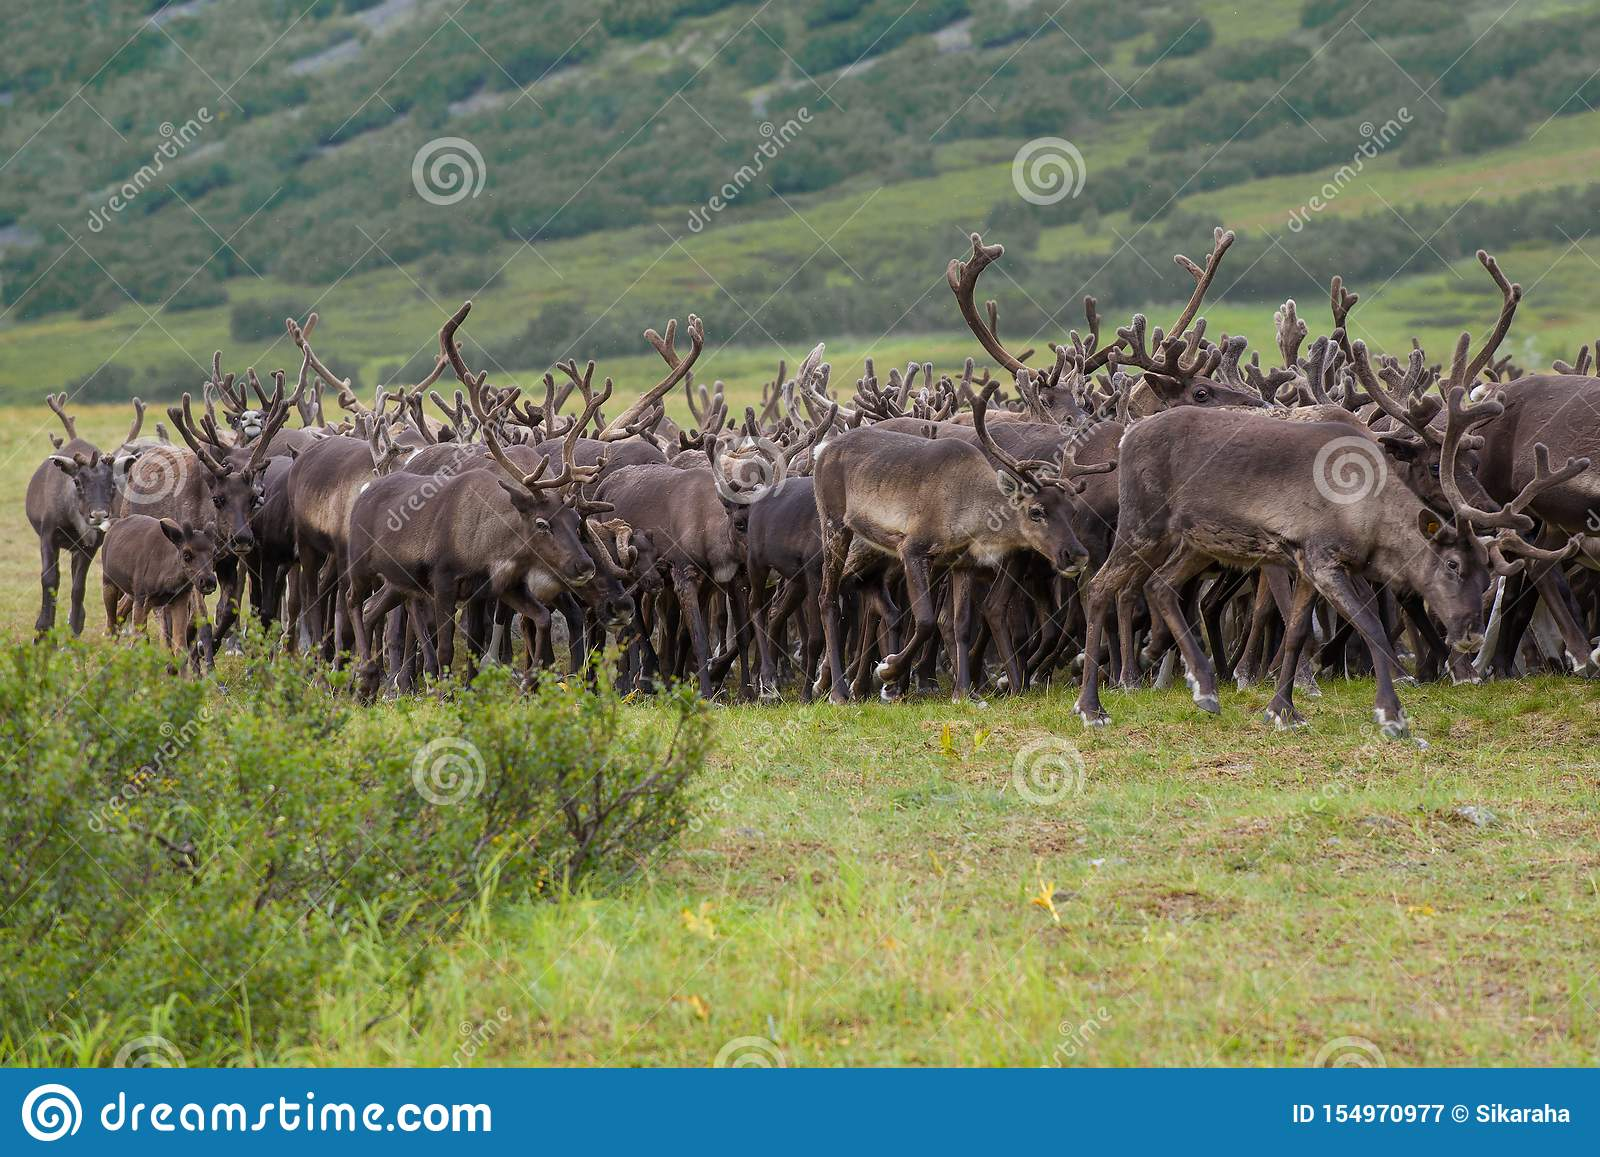 Reindeer in the herd, august day. Yamal, Russia